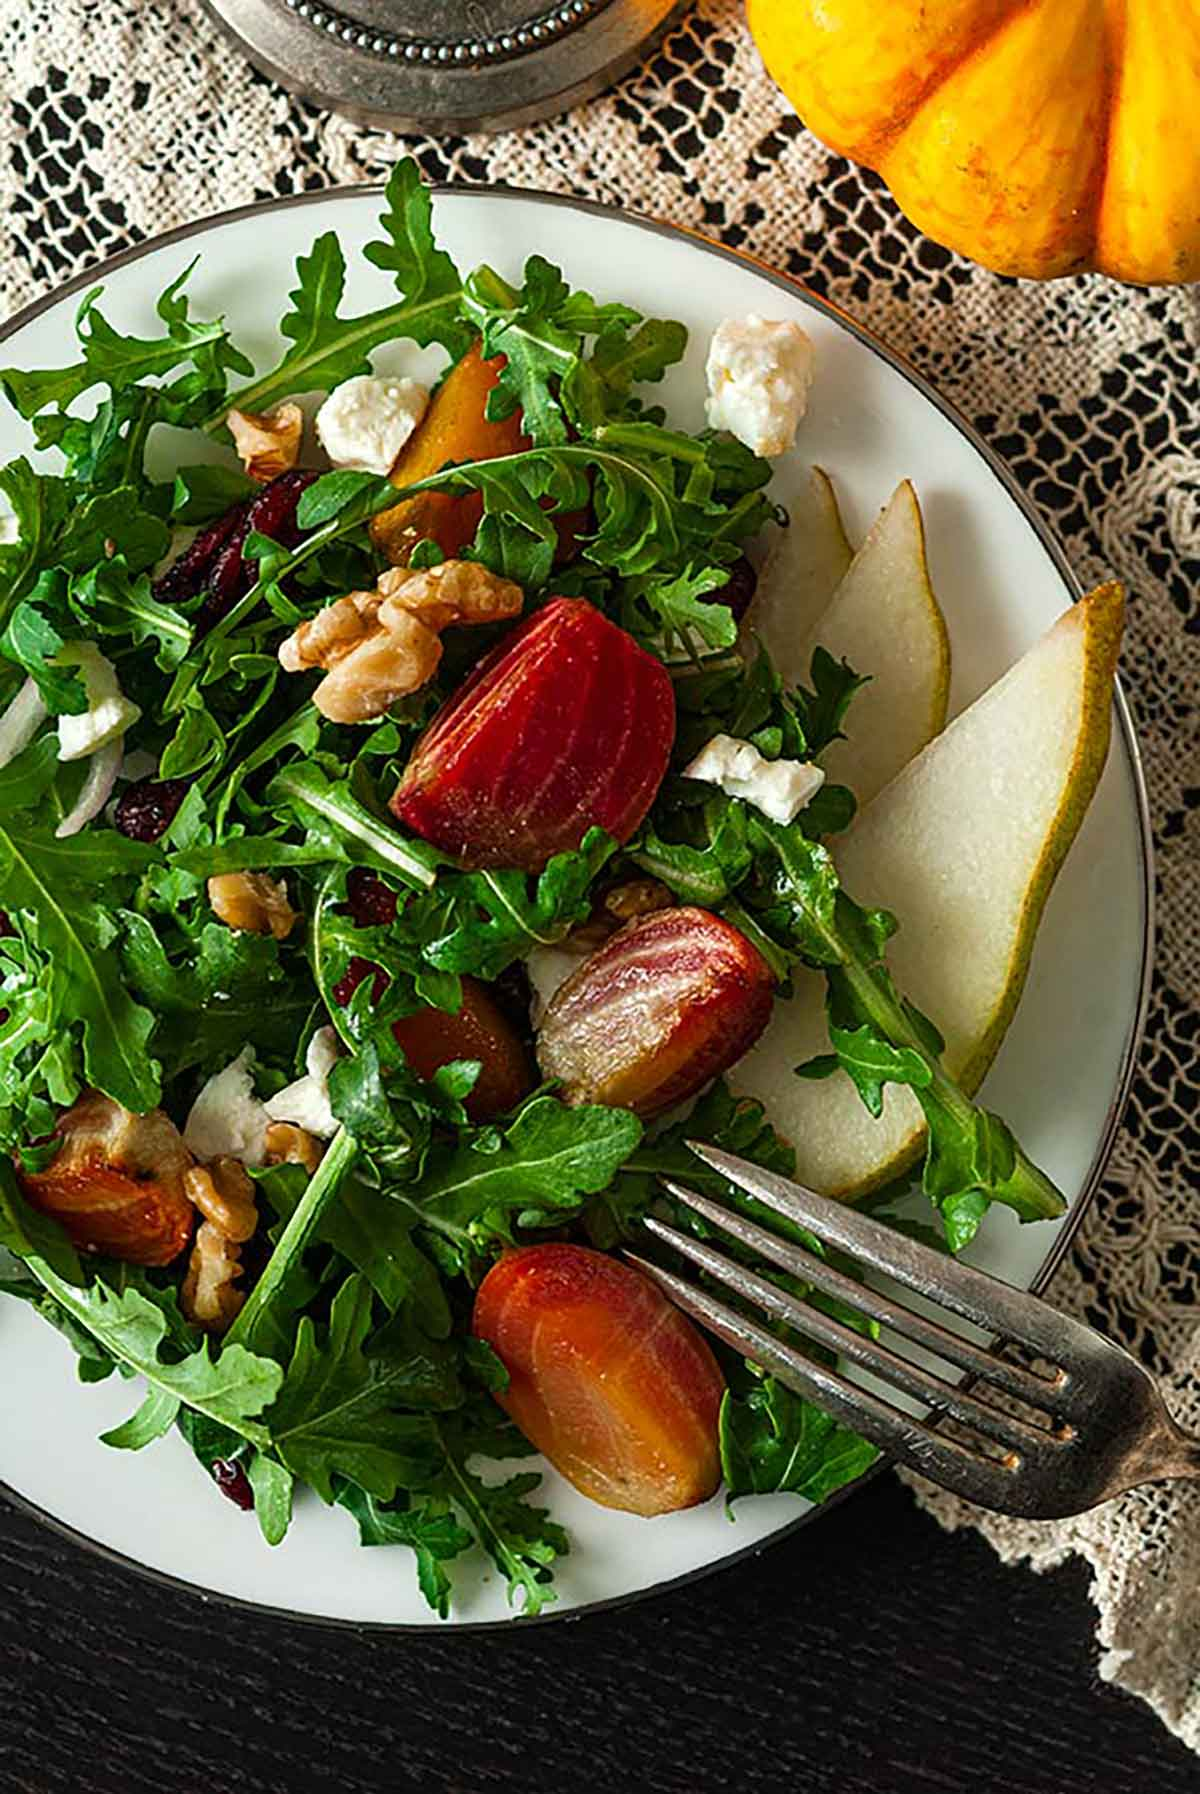 A beet and pear salad on a plate, on a lace table cloth.